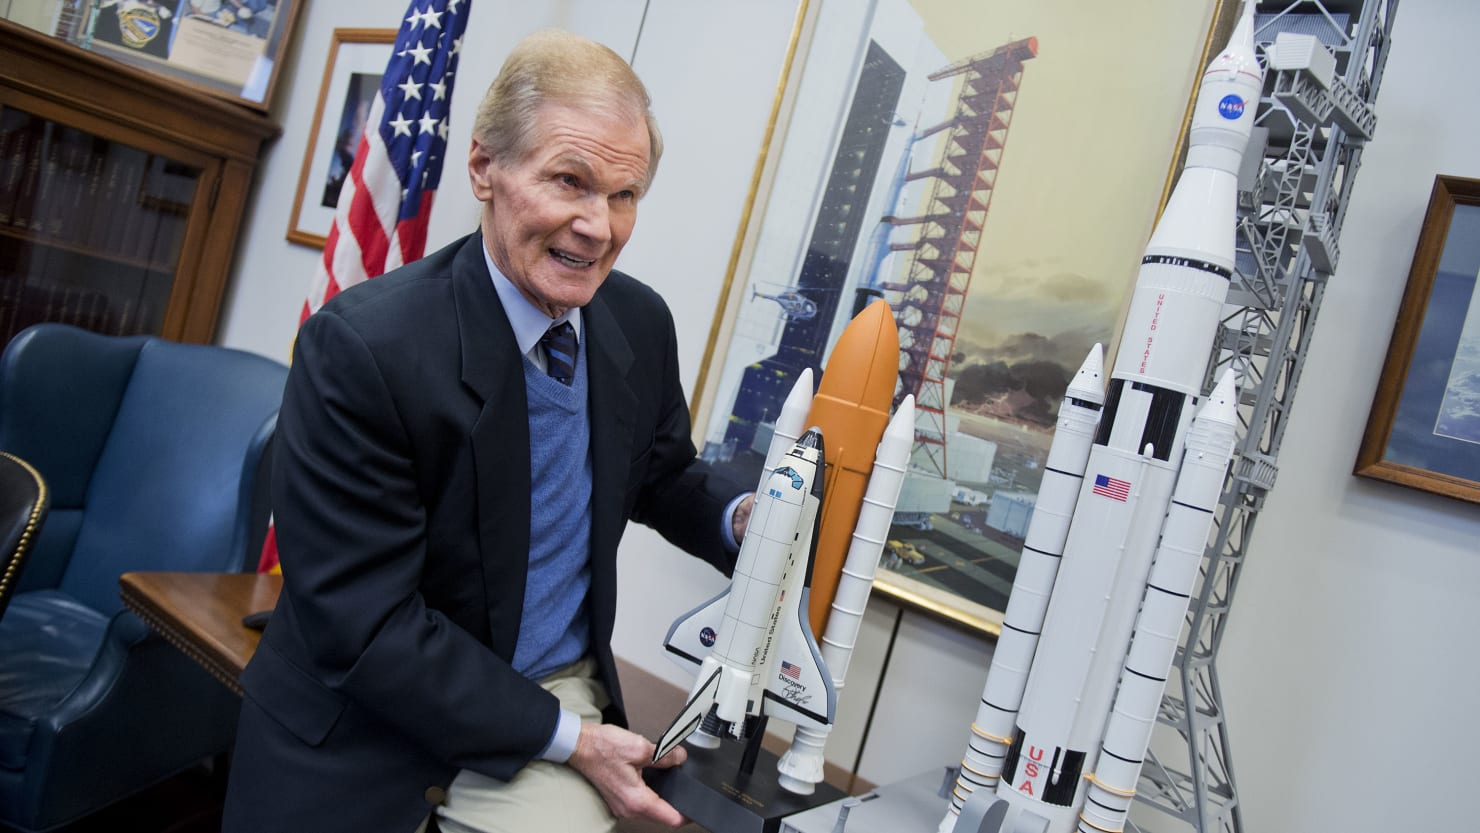 NASA Veterans Baffled by Reported Biden Pick to Lead Agency